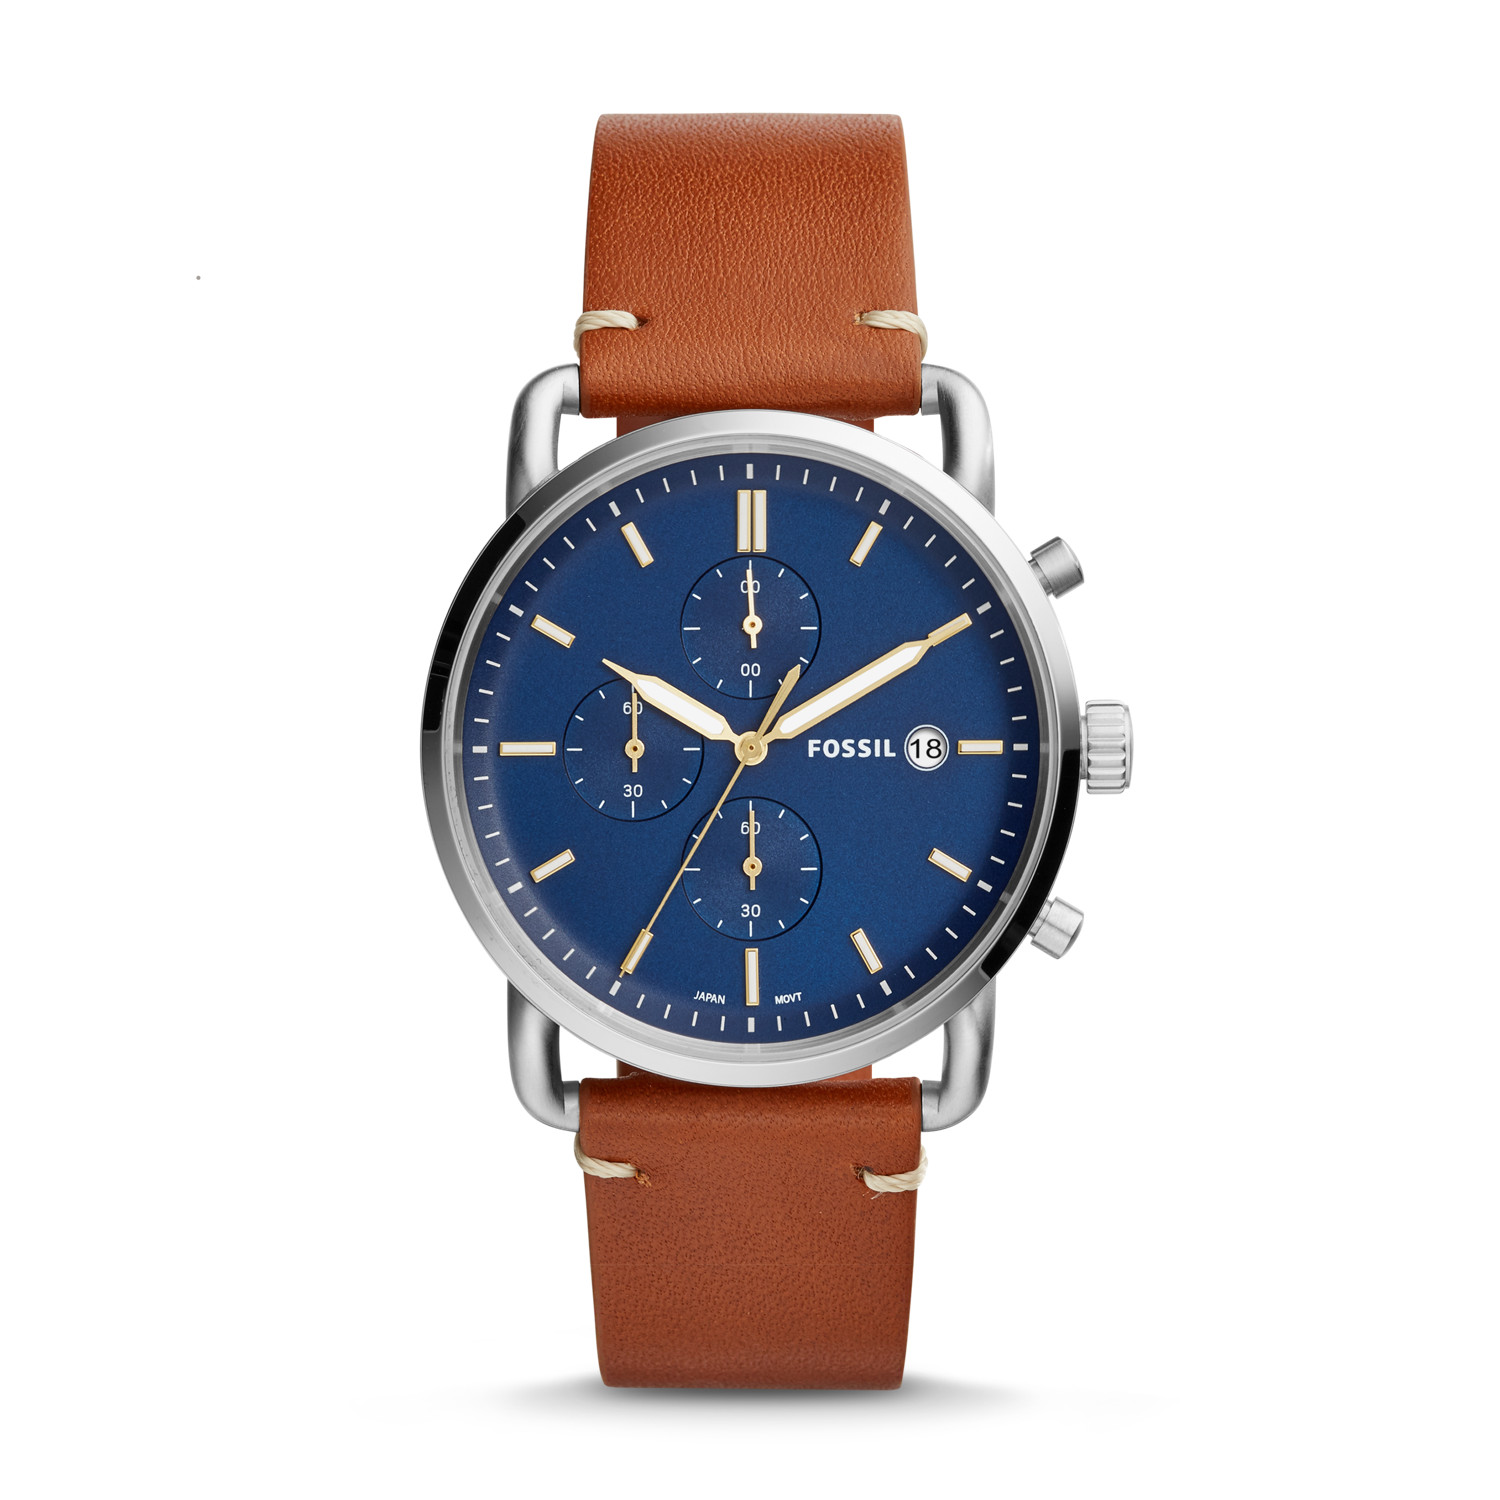 66522d526 The Commuter Chronograph Light Brown Leather Watch - Fossil